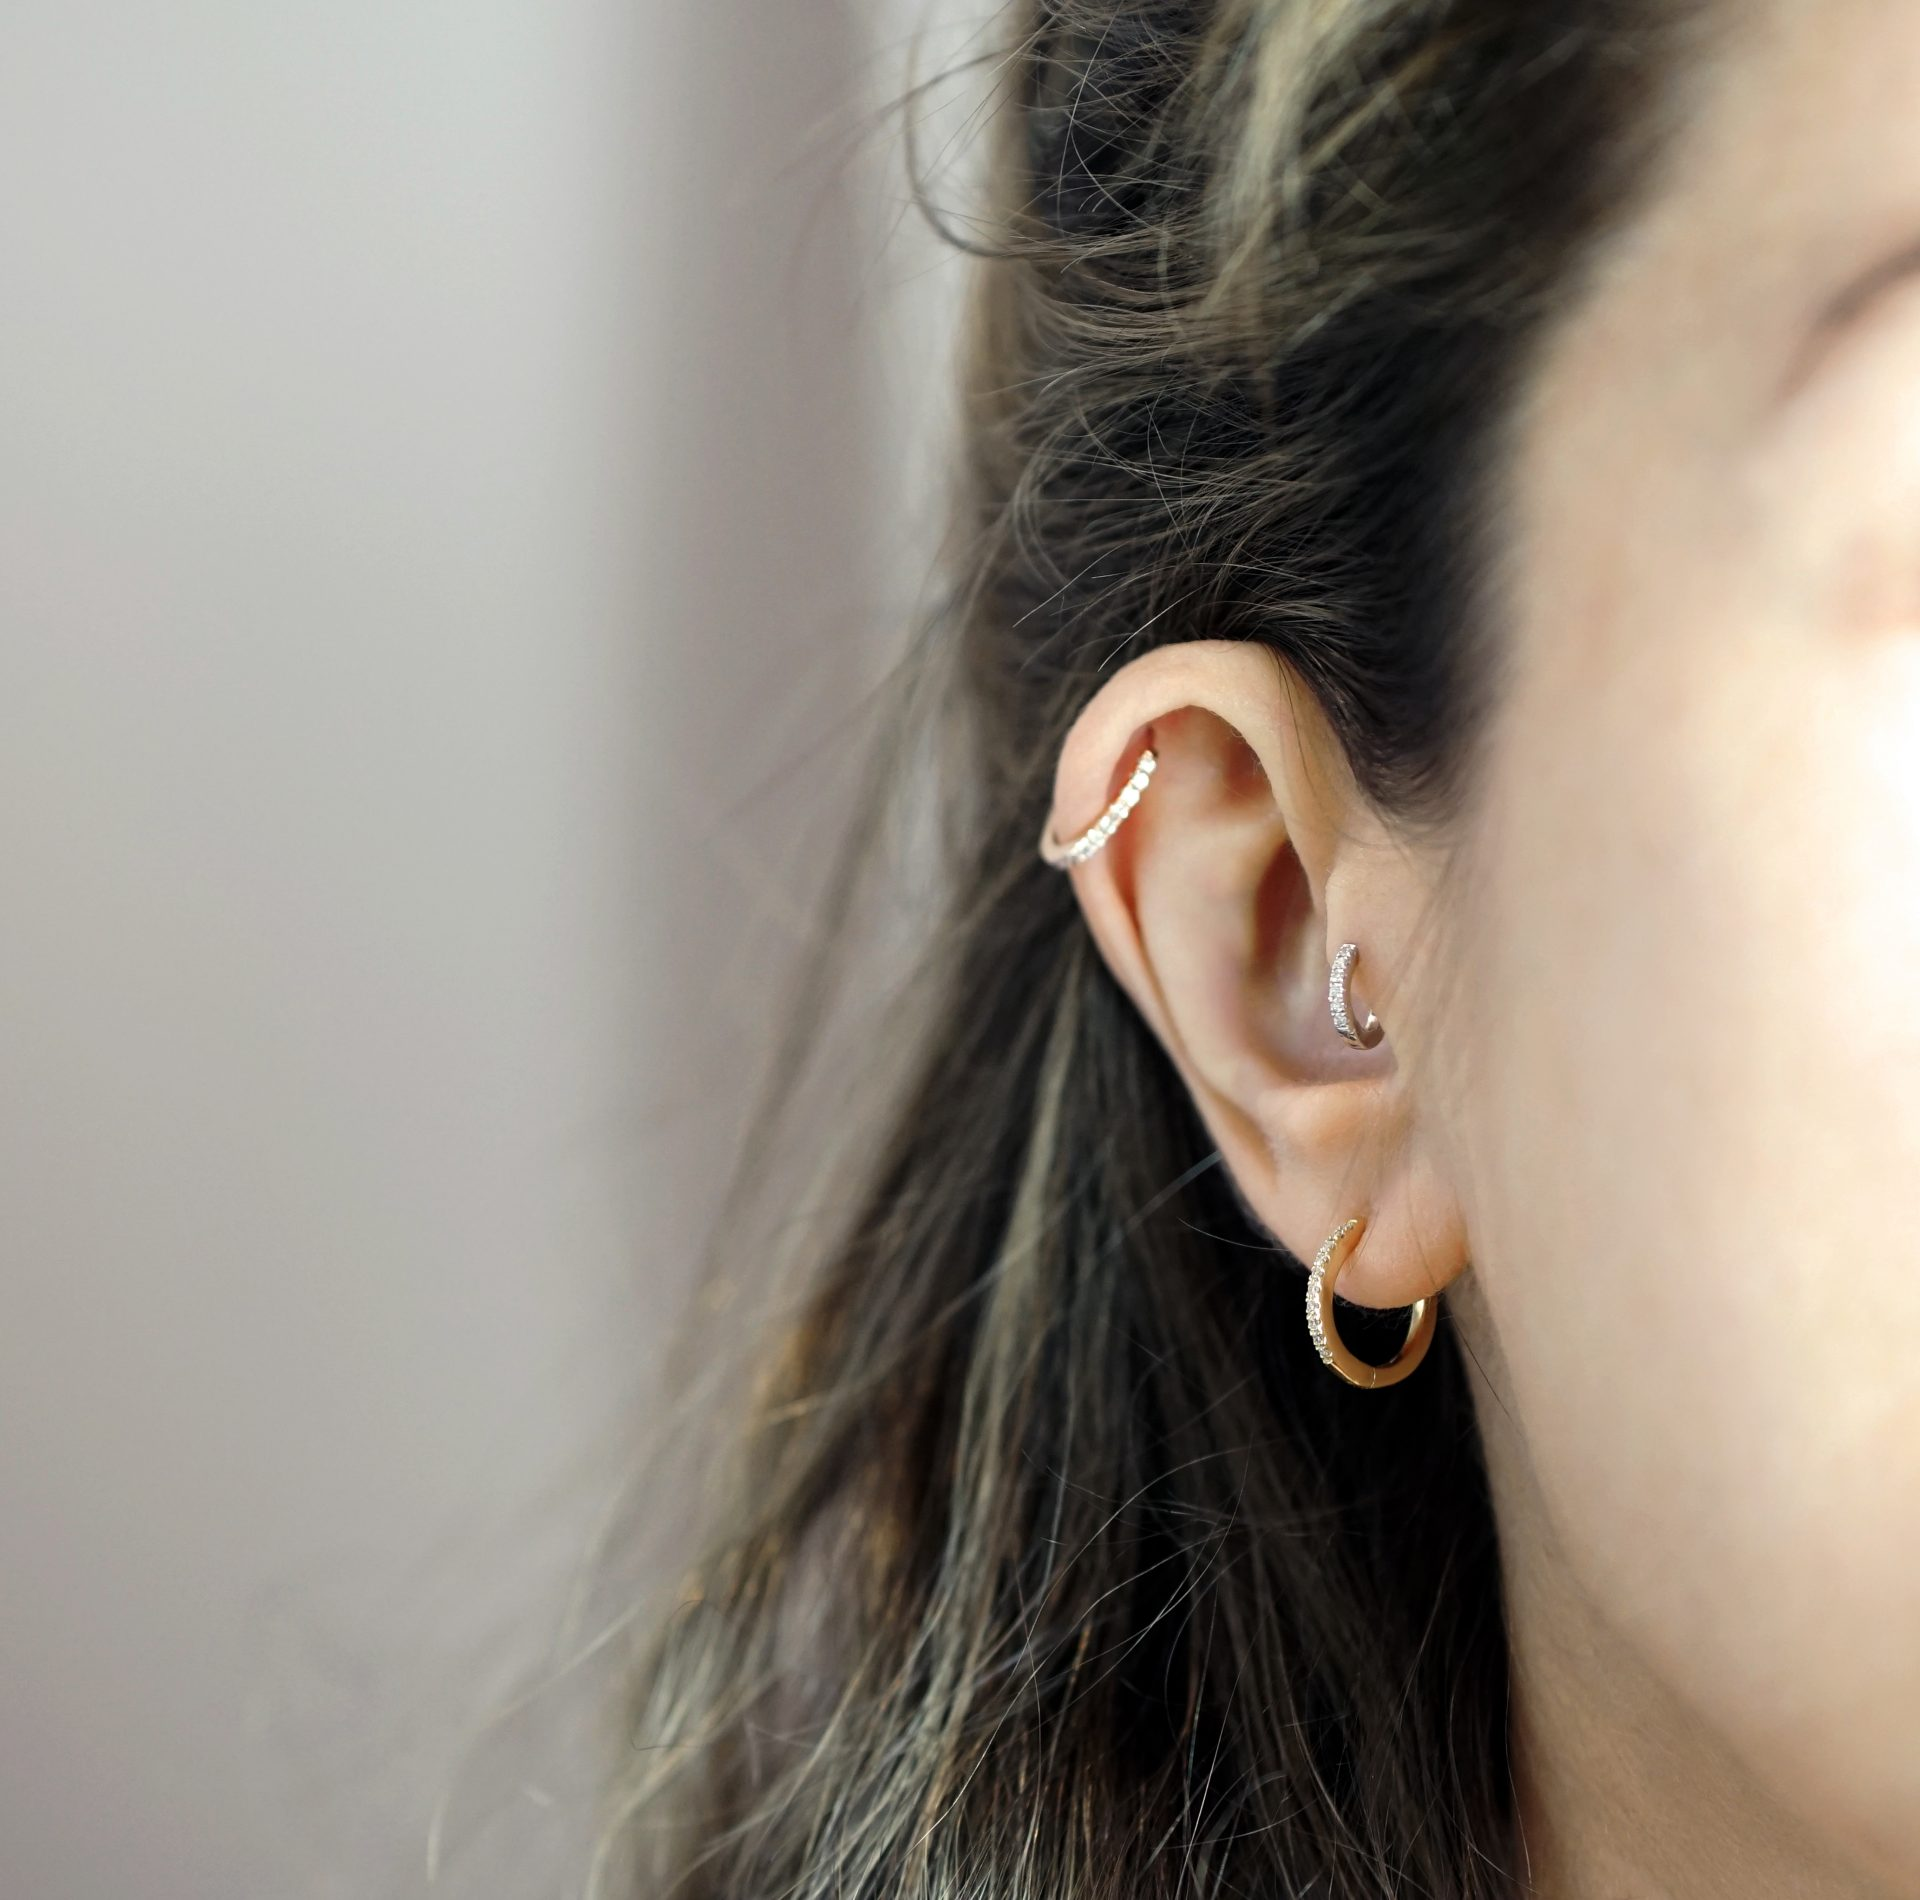 british-luxury-piercing-jewellery-brand-lena-cohen-fine-jewellery-london